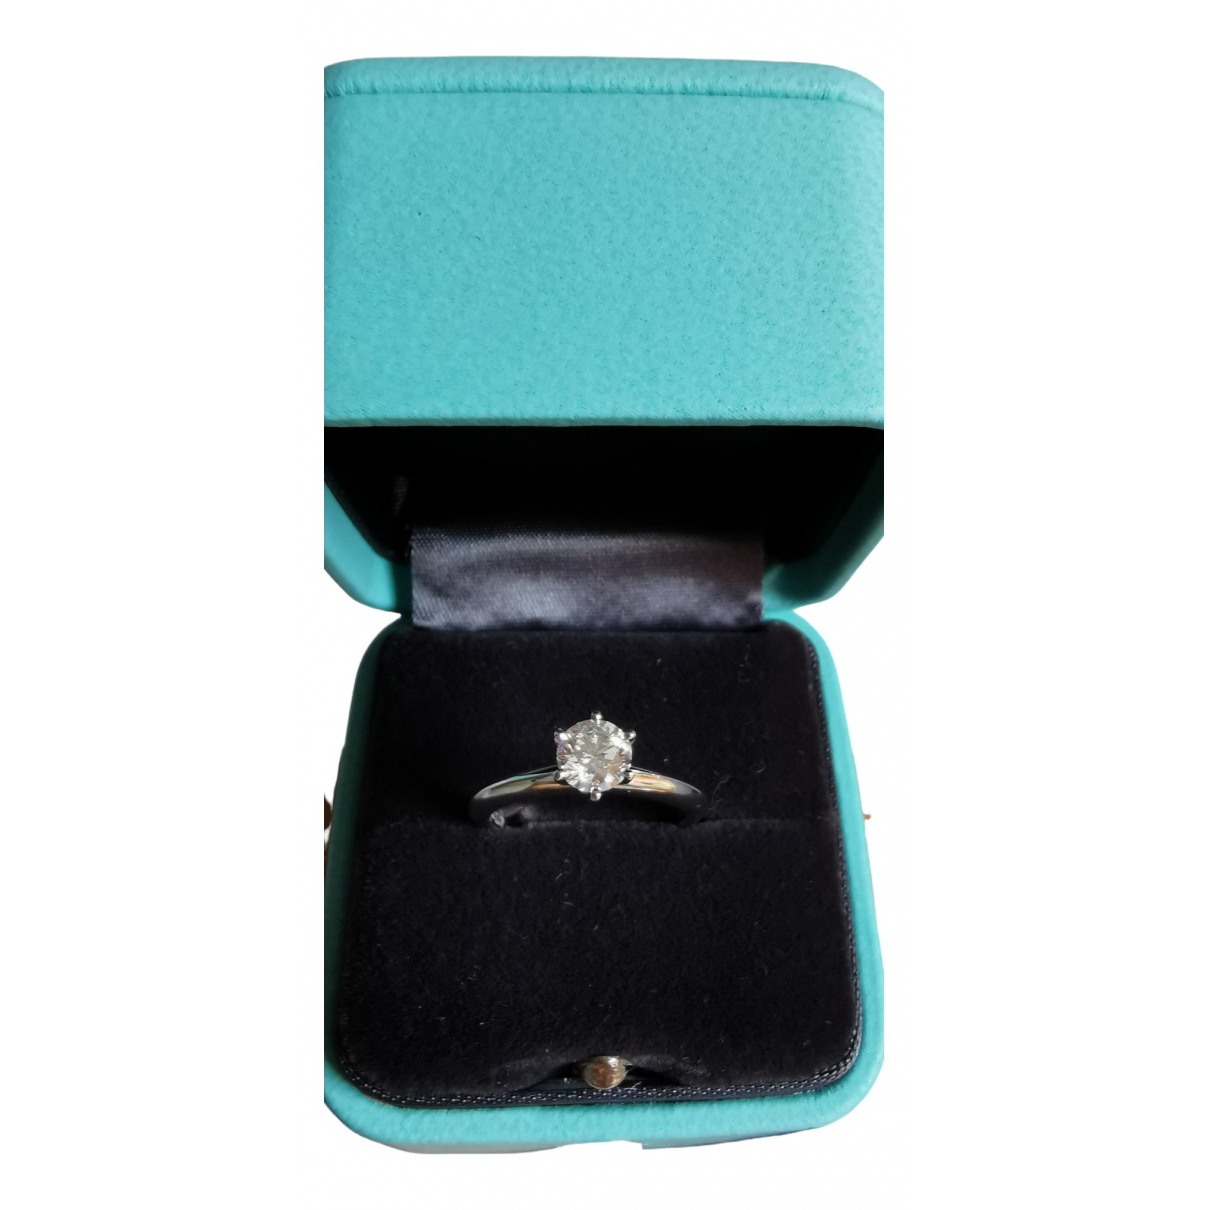 Tiffany & Co \N Silver Platinum ring for Women 3 US